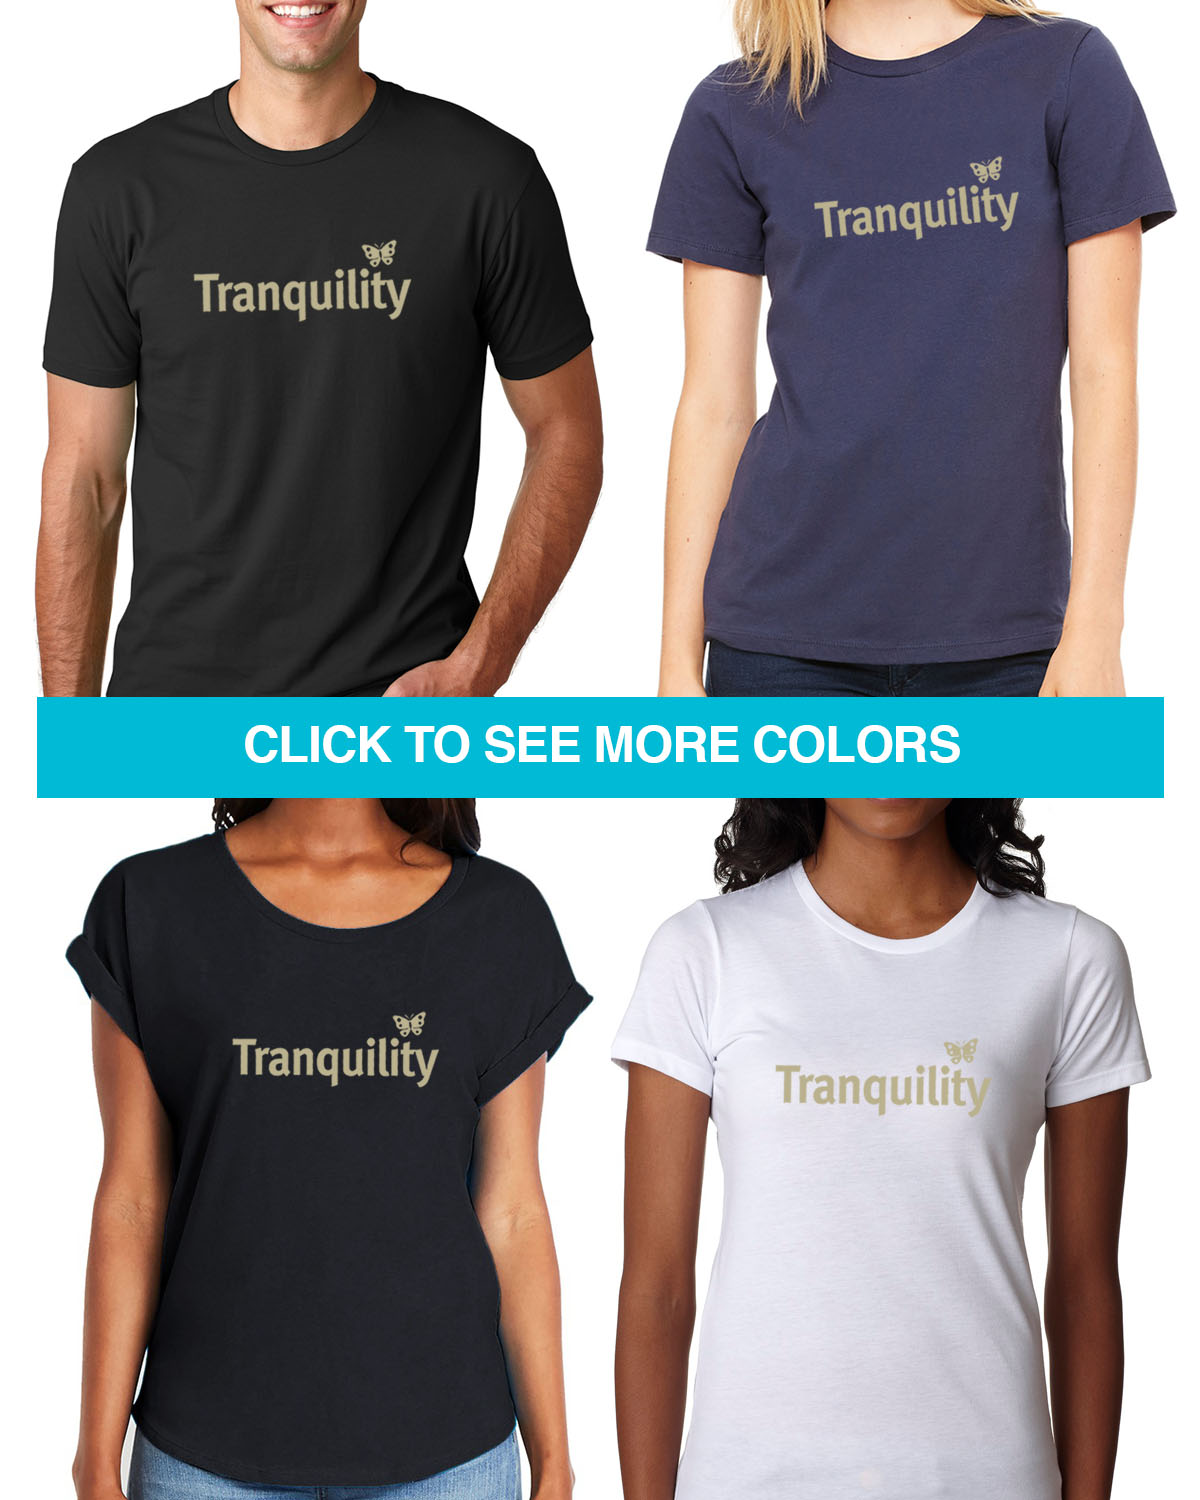 Tranquility Tees for Men & Women